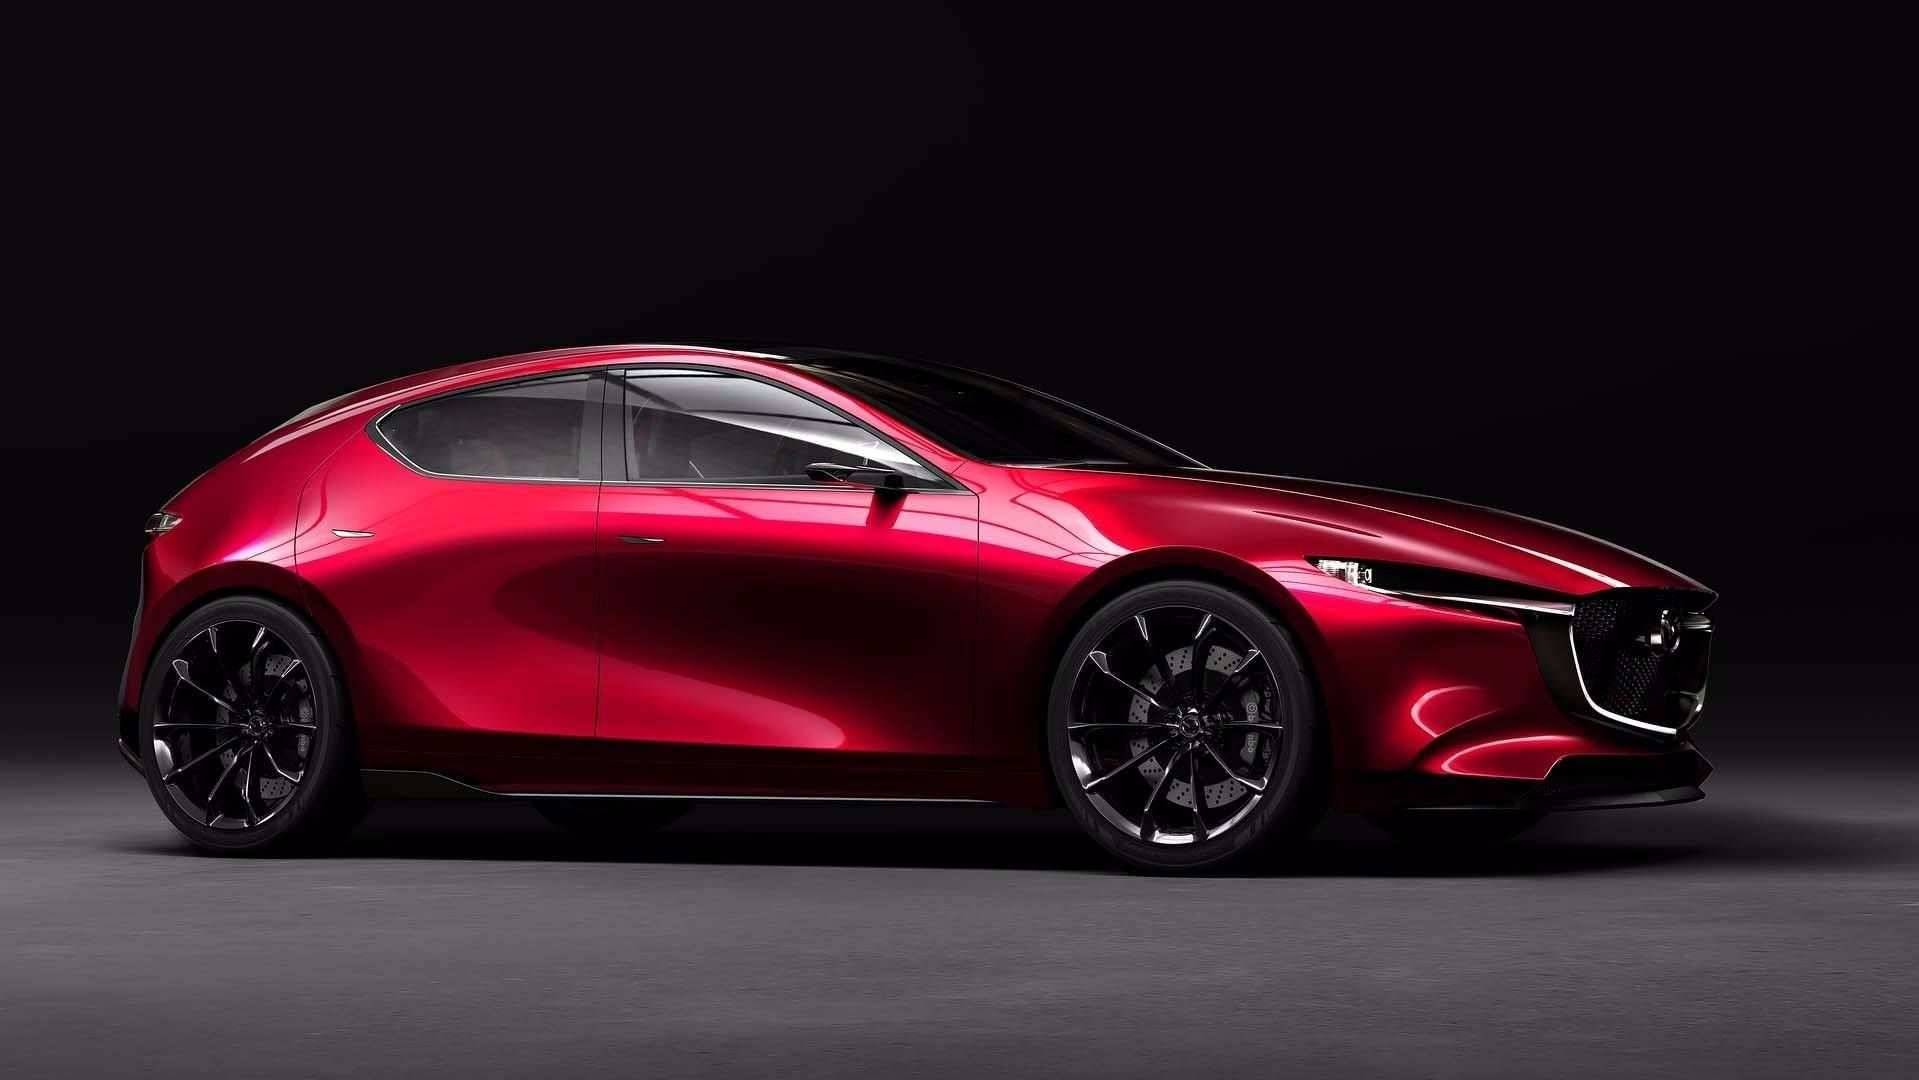 86 All New Mazda 3 2019 Lanzamiento Redesign And Concept